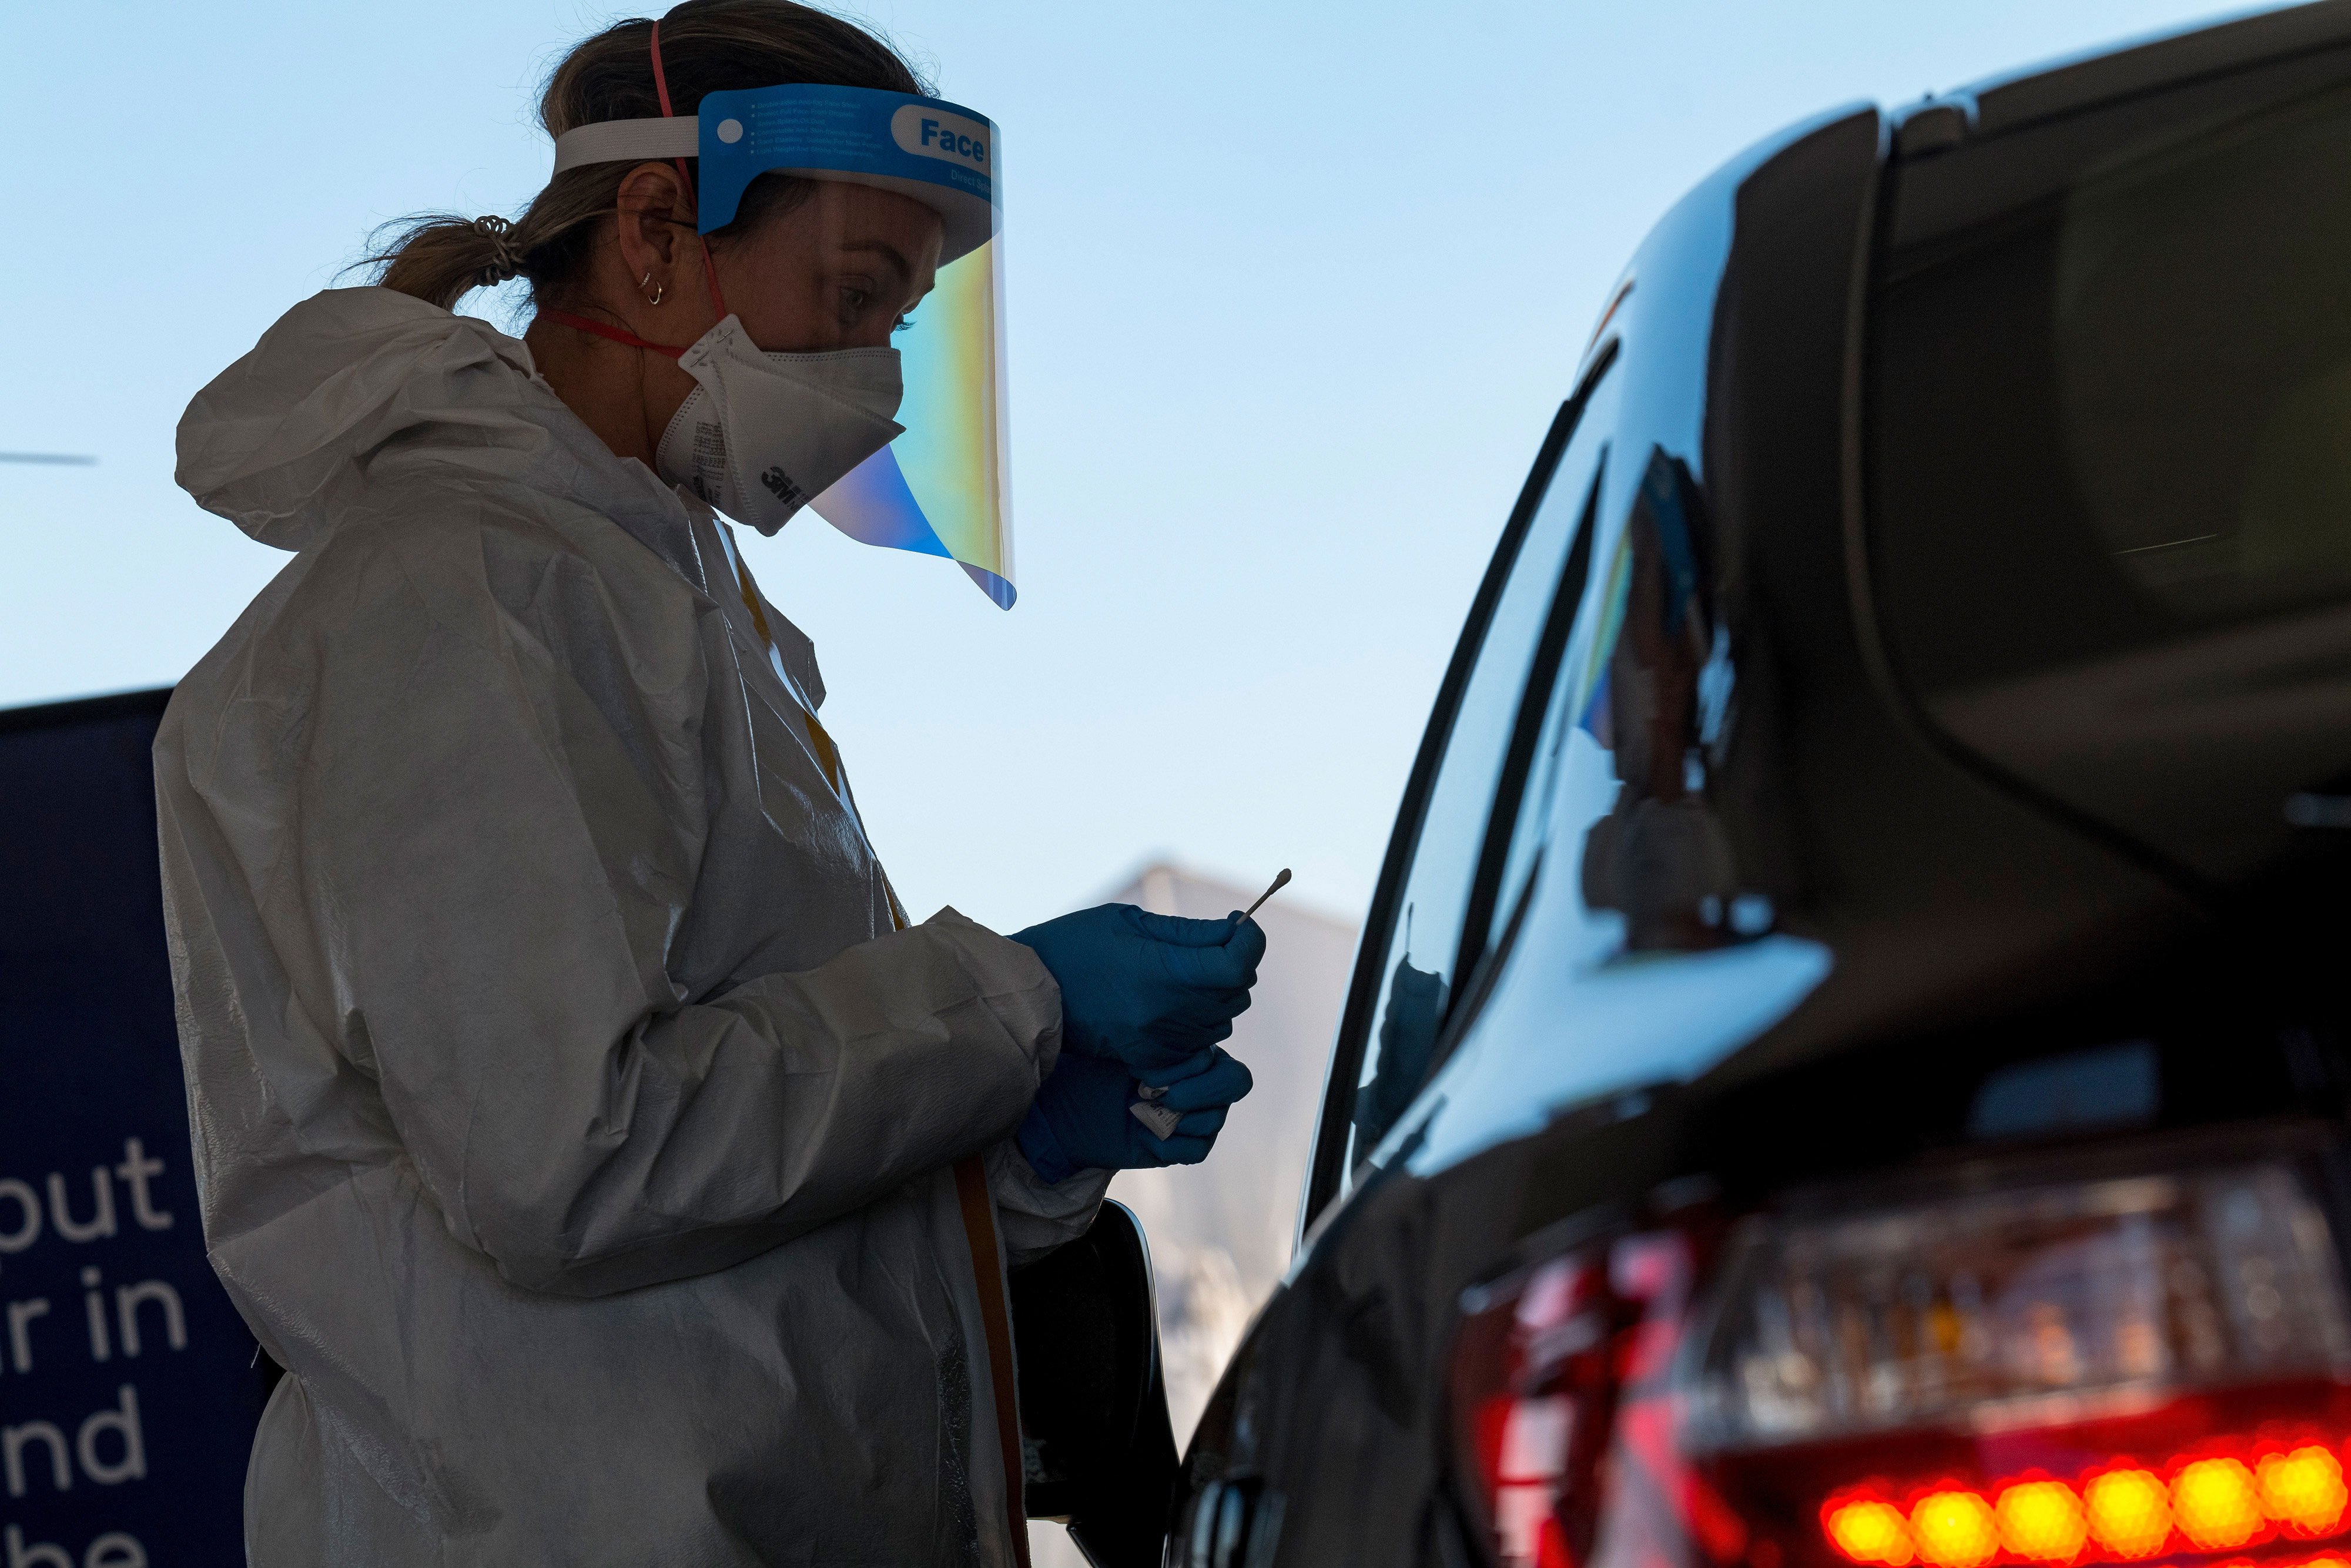 A health care worker in San Francisco administers a nasal swab test at a Covid-19 testing site on December 1.